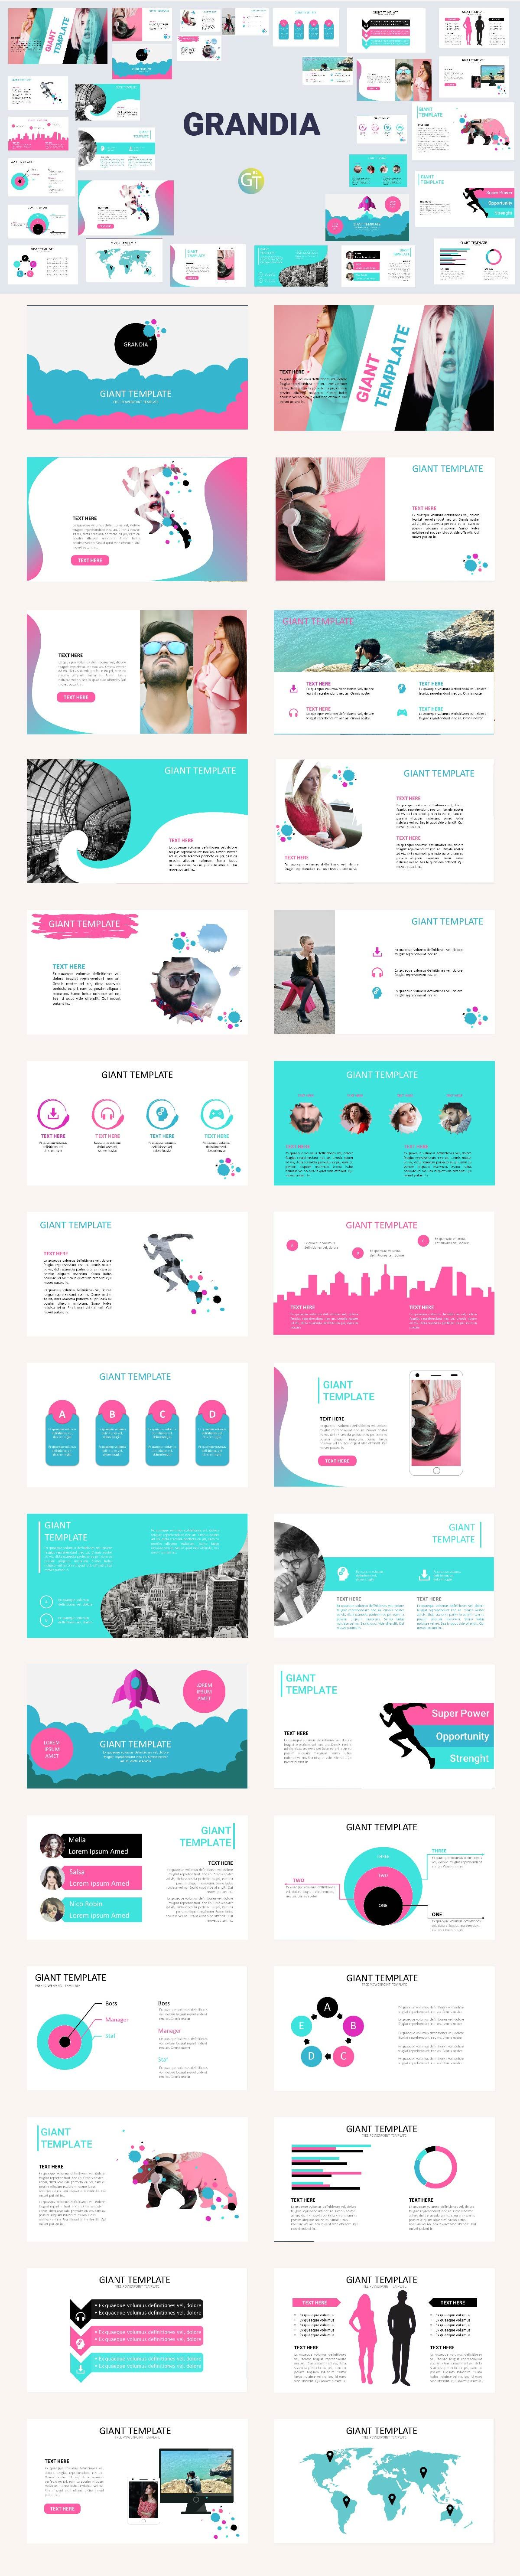 Download Template Powerpoint Animasi Free Download Template Ptt Free Powerpoint Templates Download Powerpoint Free Powerpoint